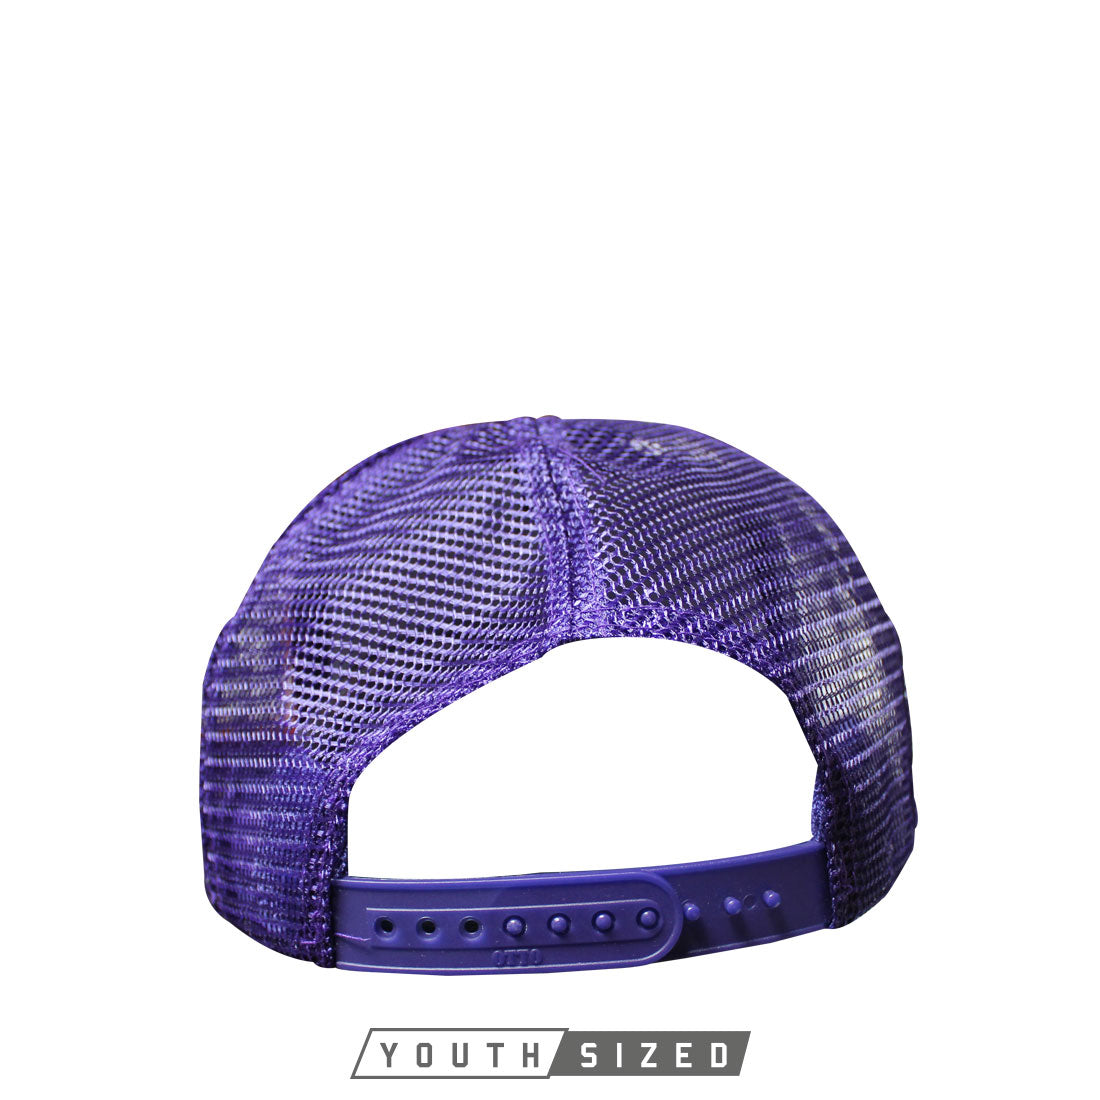 Horizon Youth Curved Bill Trucker Hat in Purple - Back Snap